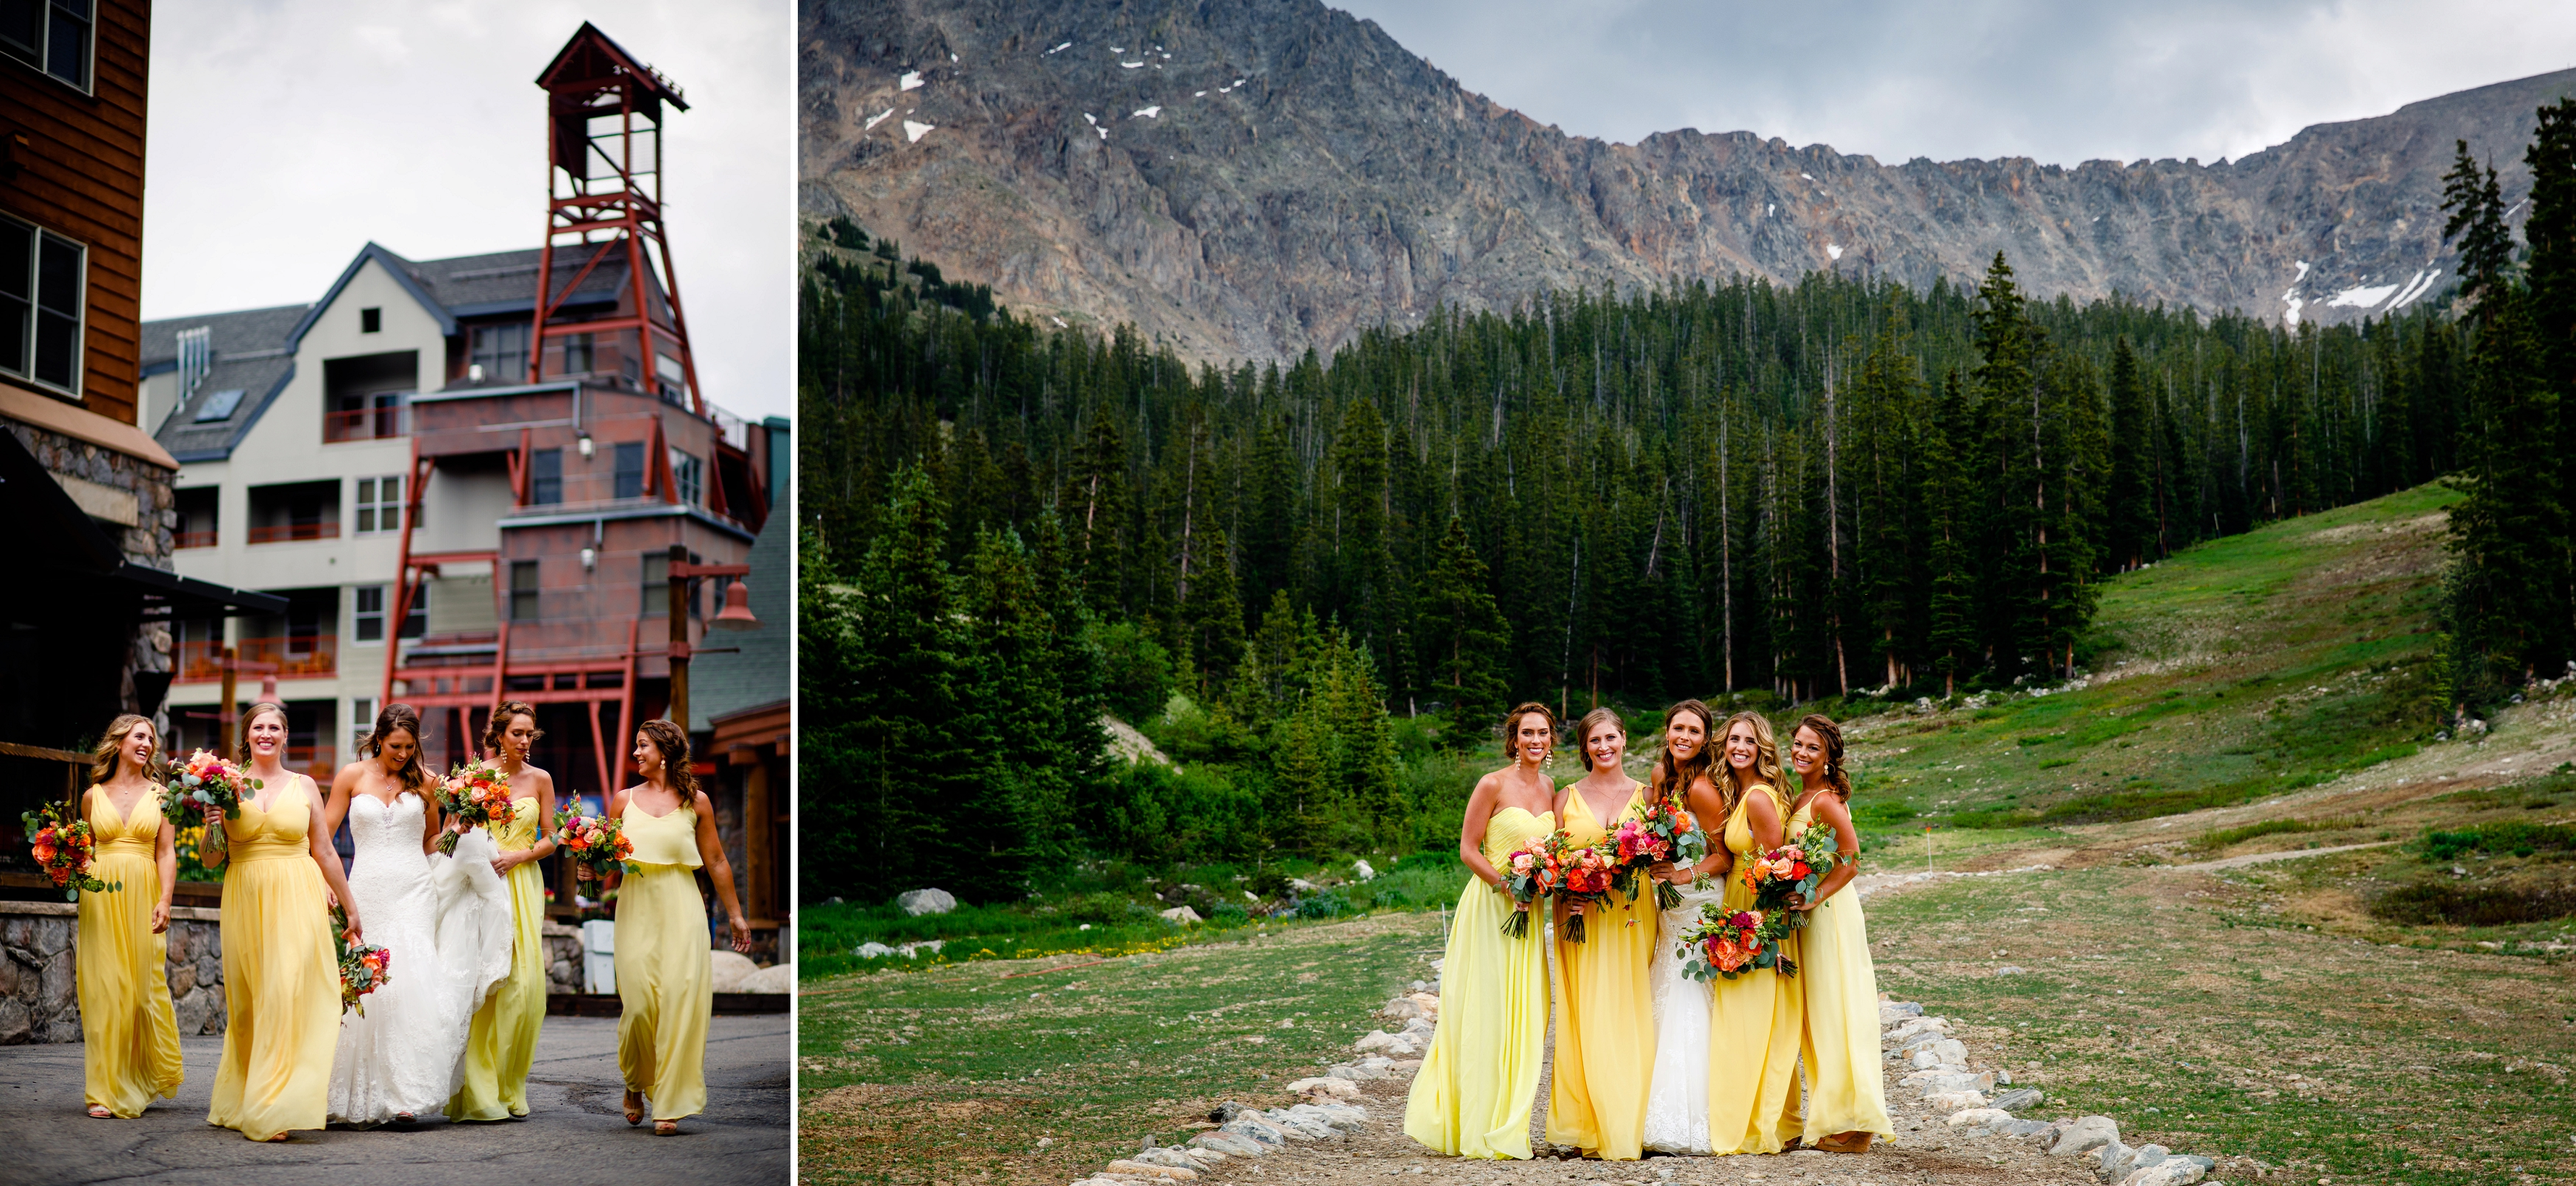 Yellow bridesmaids dresses at Keystone, CO